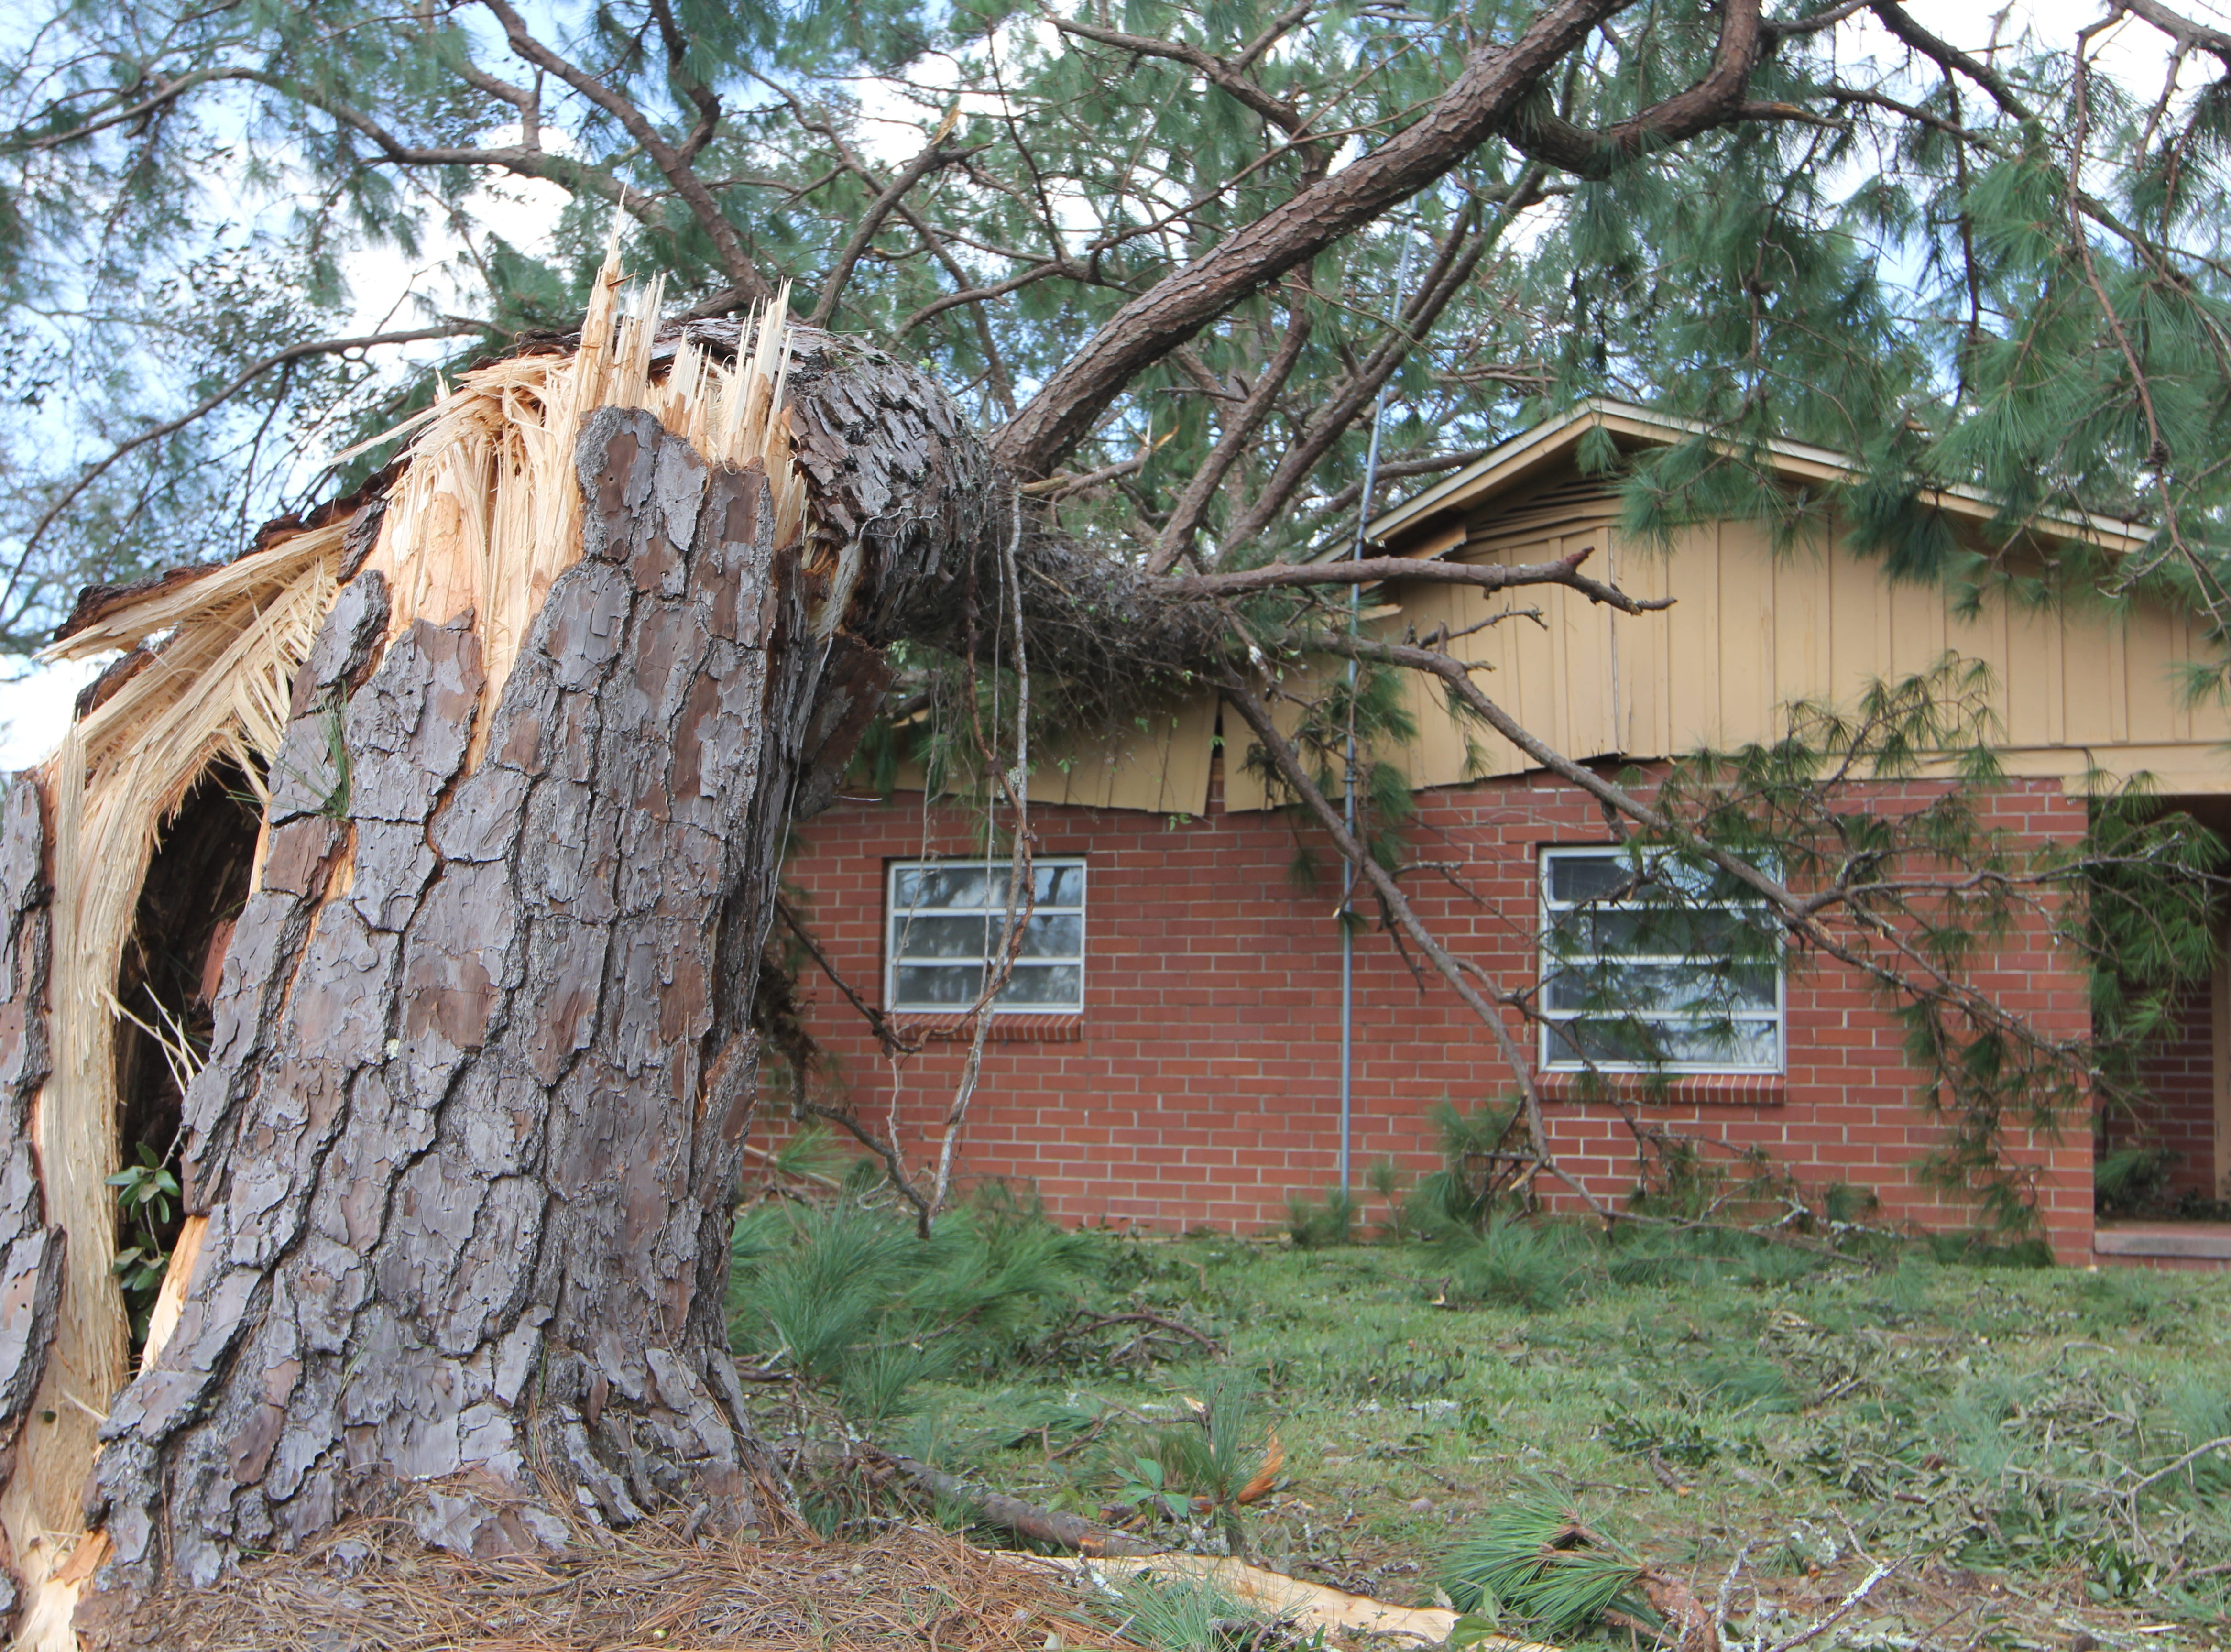 A tree that smashed through a home in  Gadsden County pictured Thursday, Oct. 11, 2018.